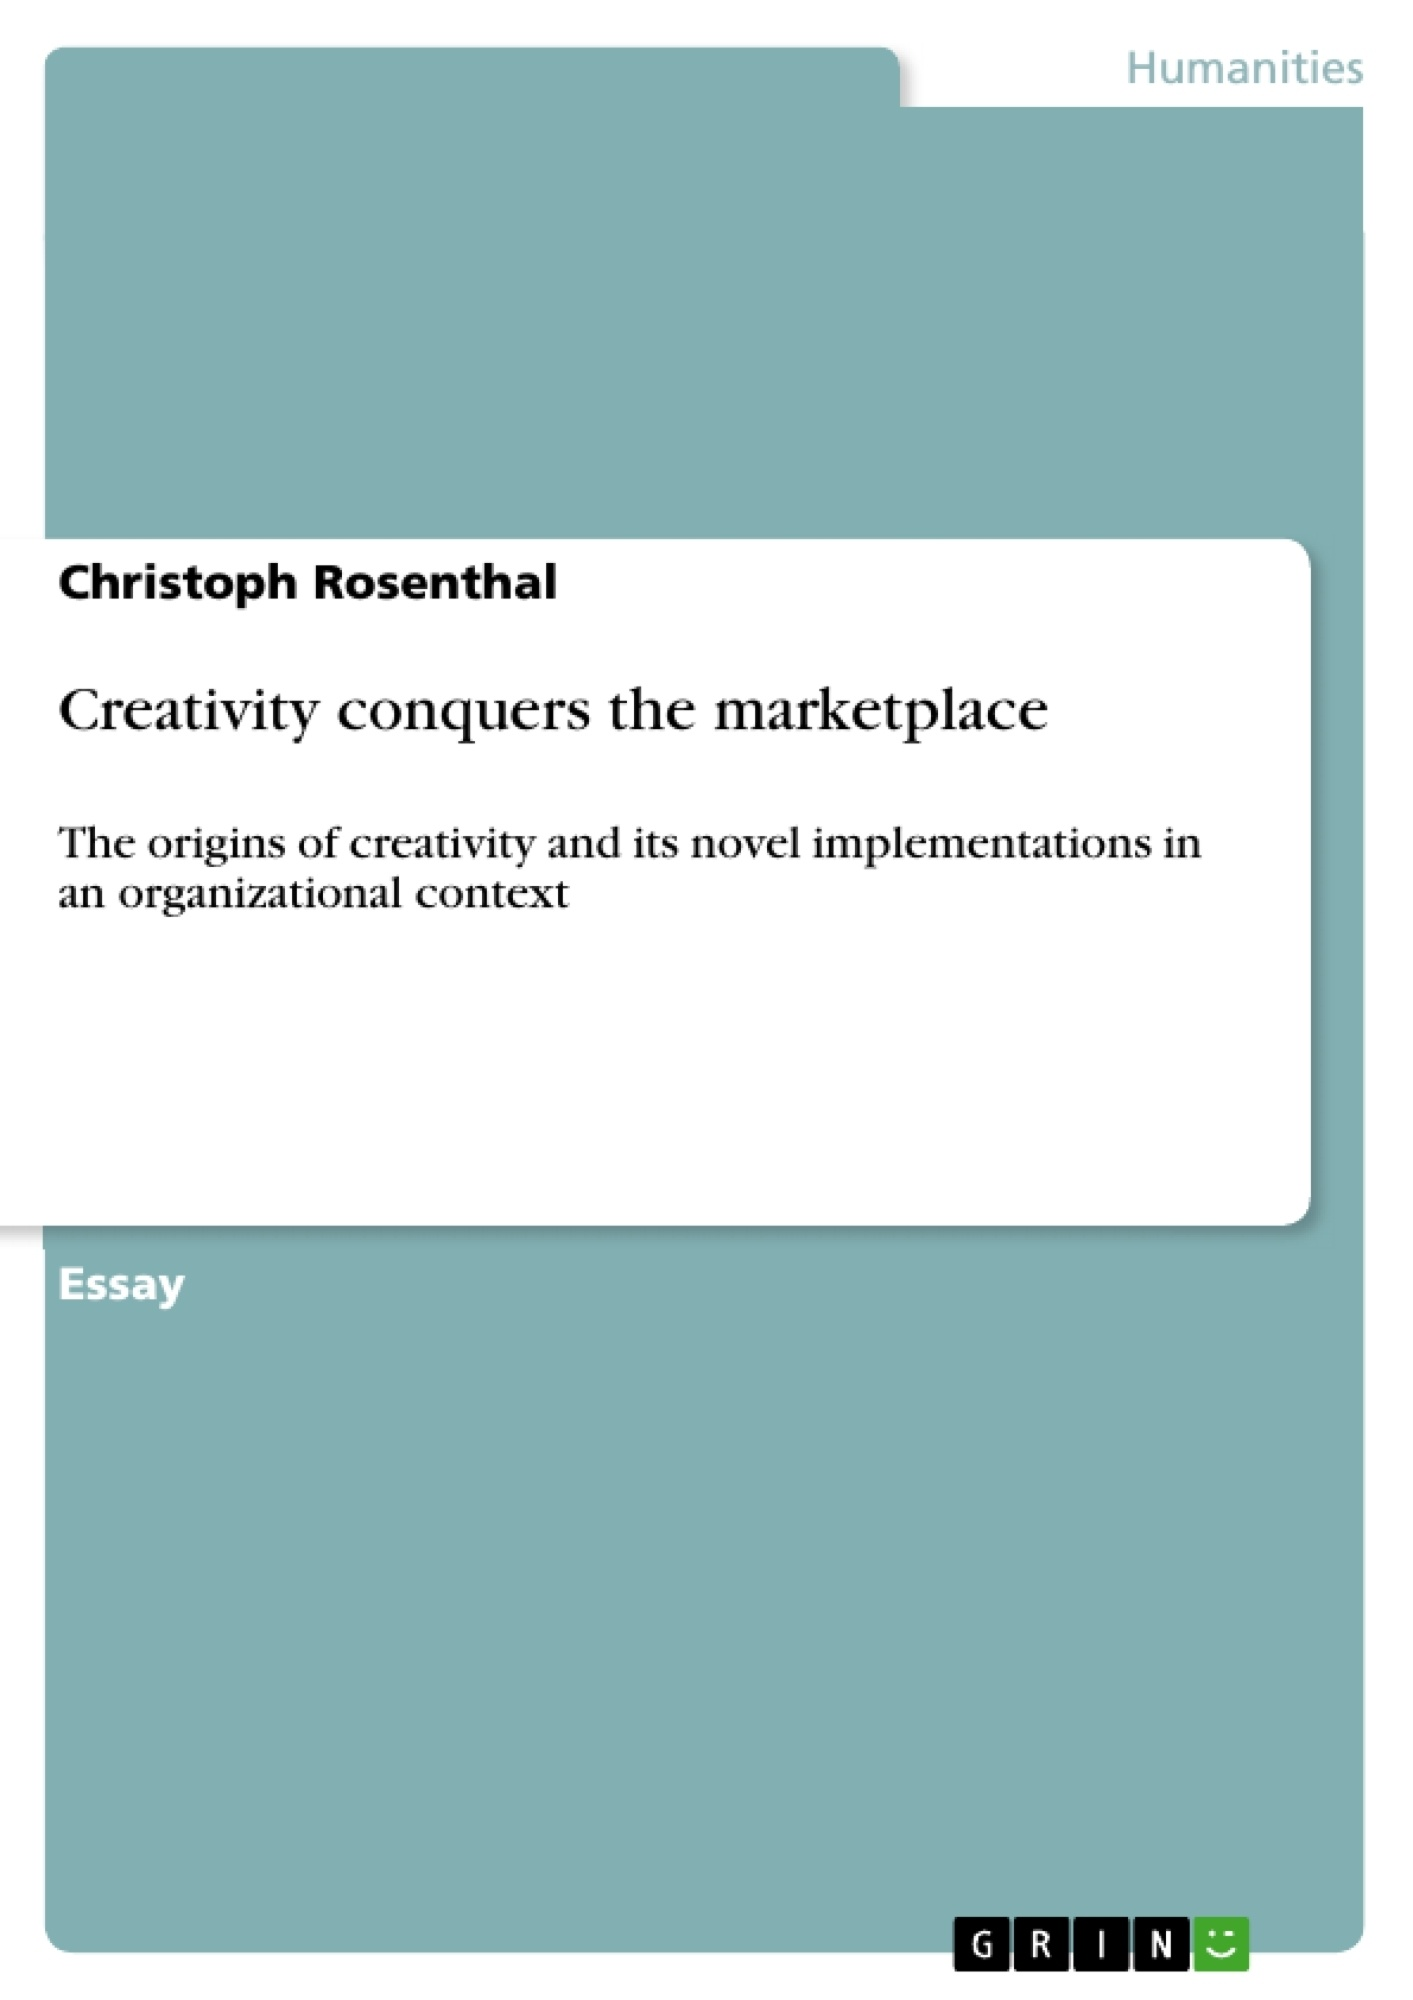 Title: Creativity conquers the marketplace